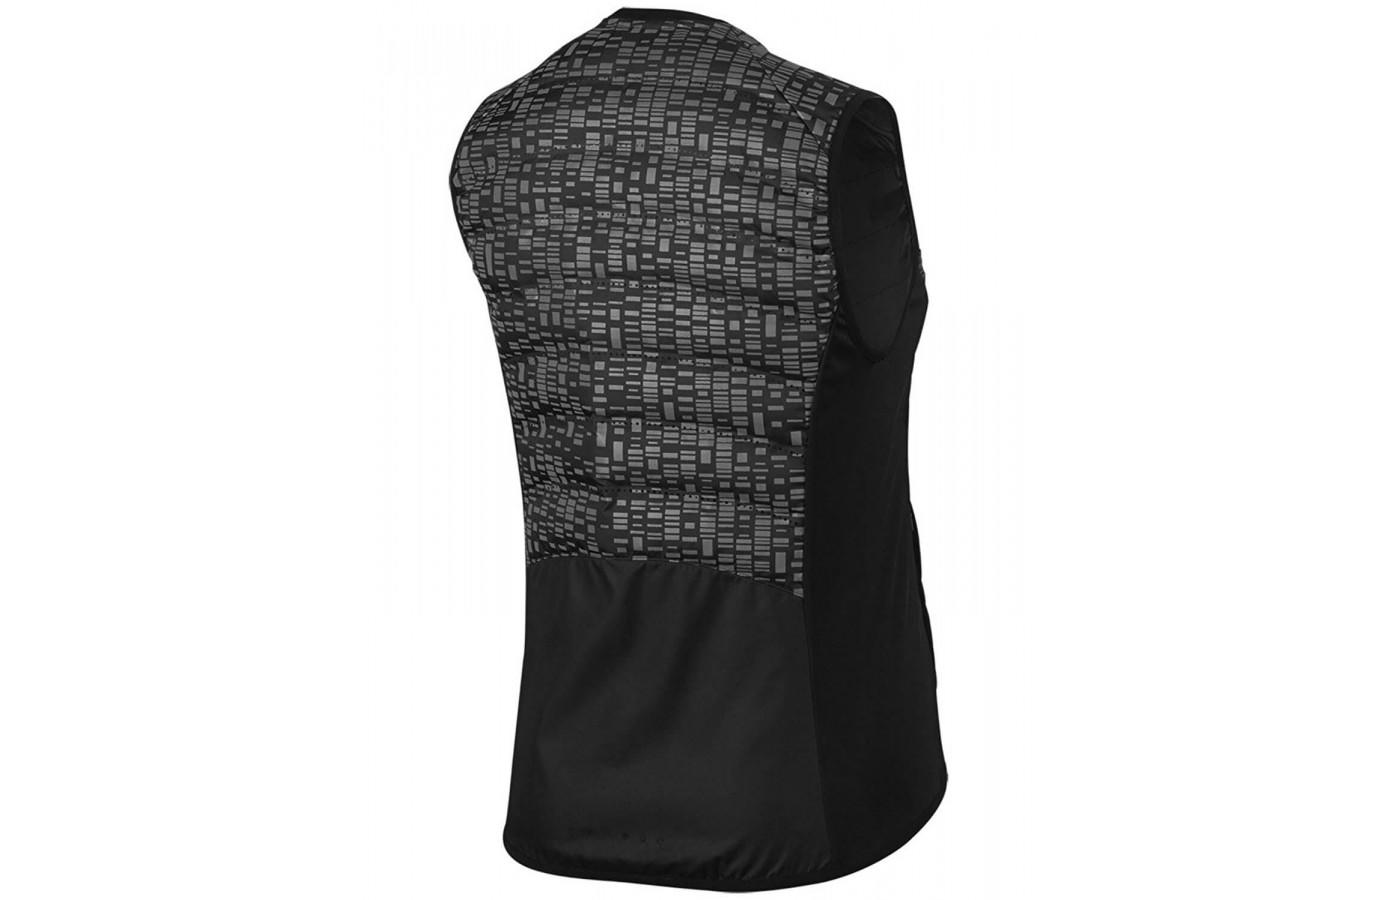 The Aeroloft Flash vest features warm insulated panels with Nike Flex fabric on the sides